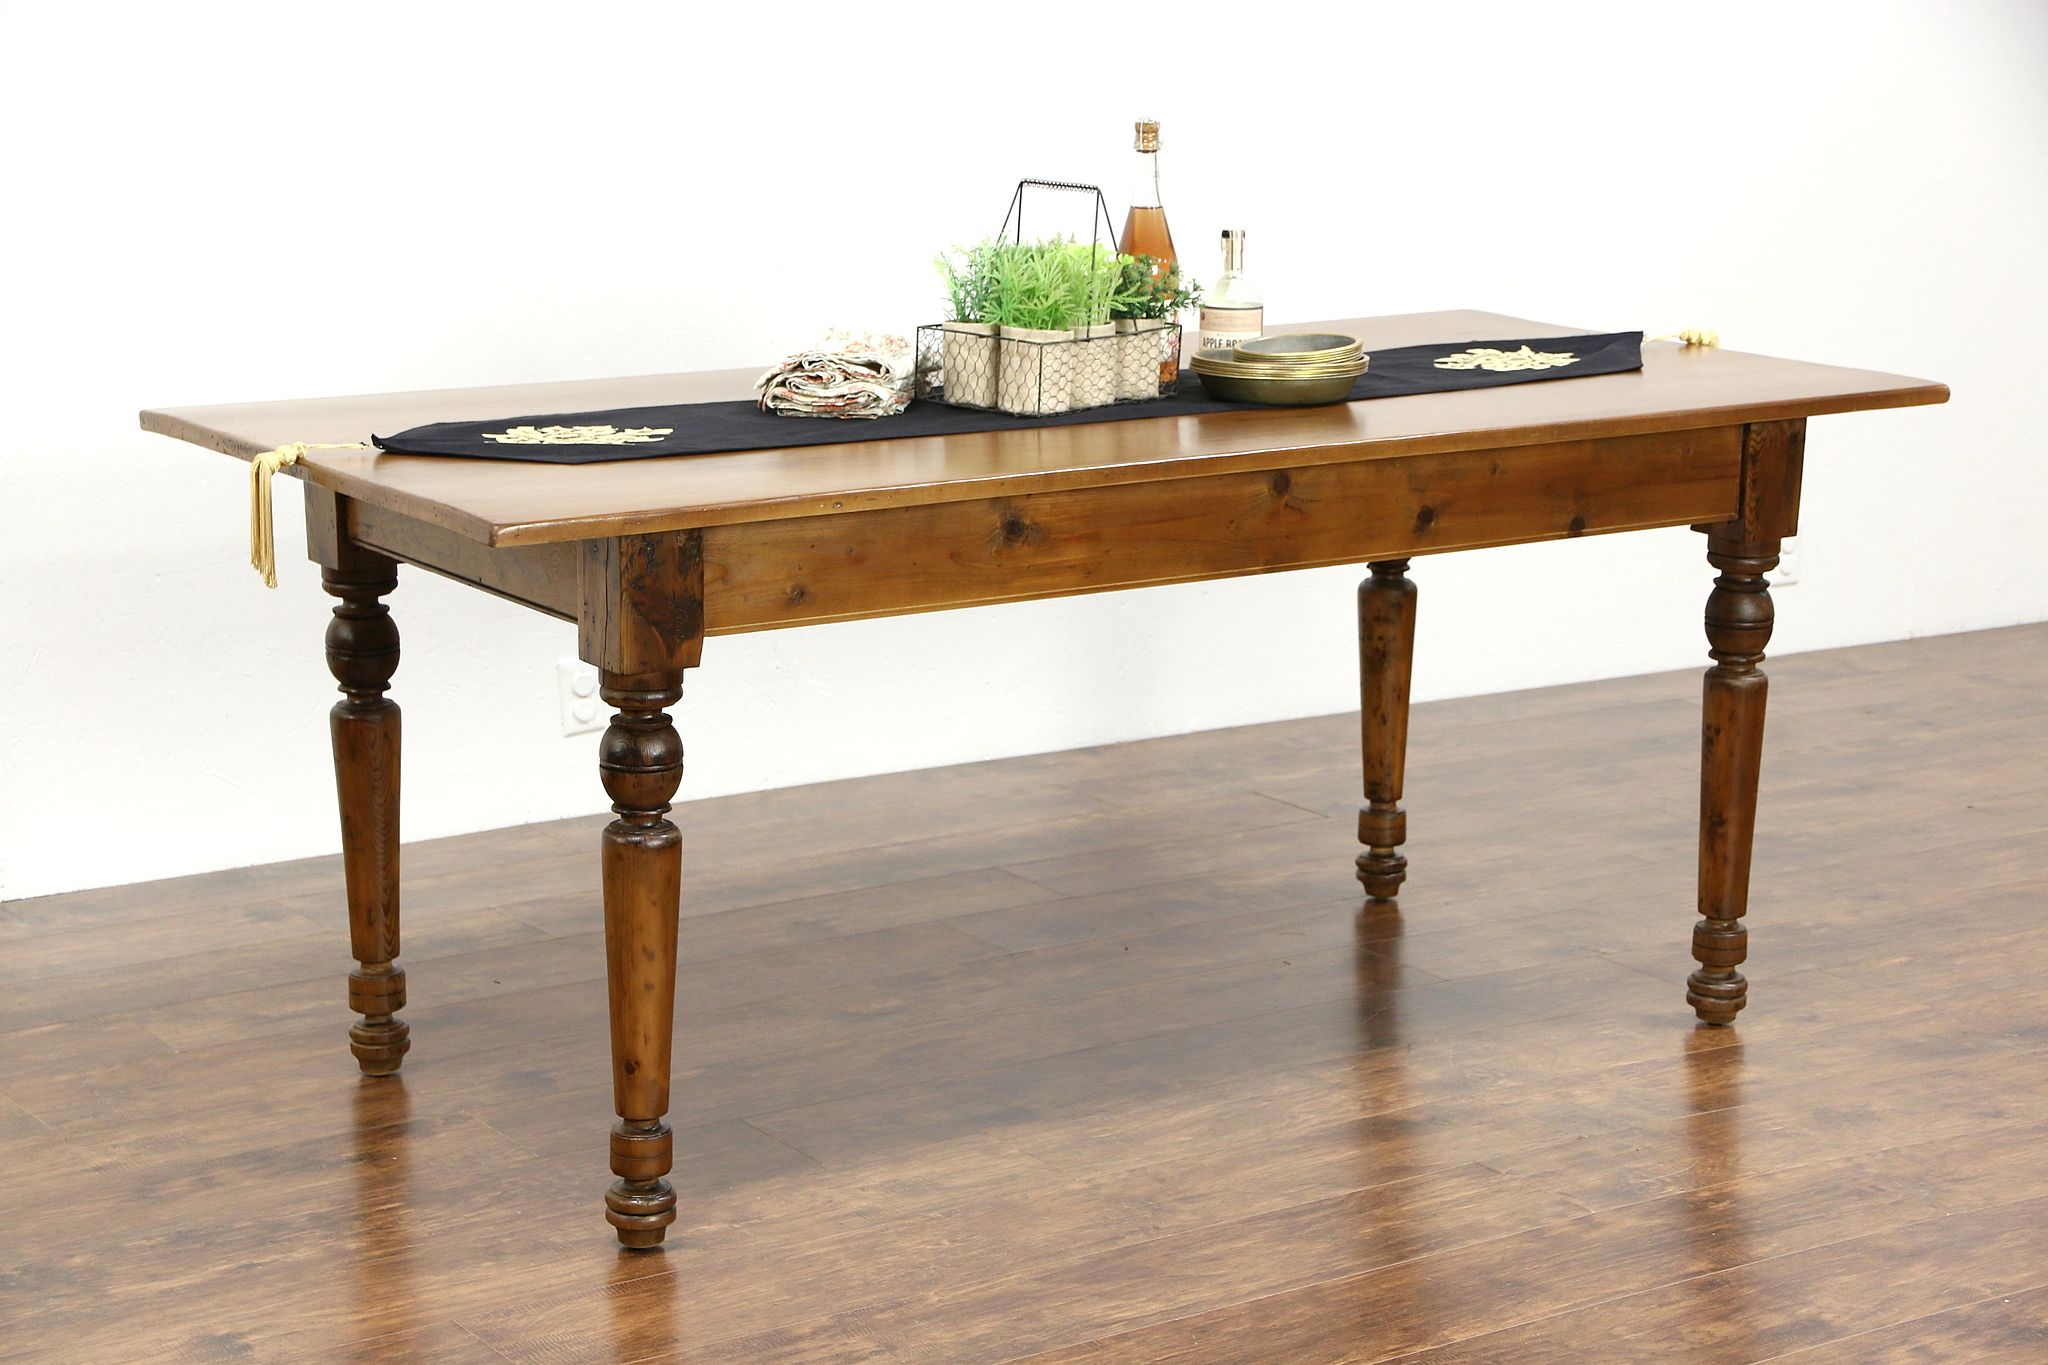 sold country pine maple 1890 antique farmhouse harvest dining rh harpgallery com antique harvest table for sale ontario antique harvest table ontario